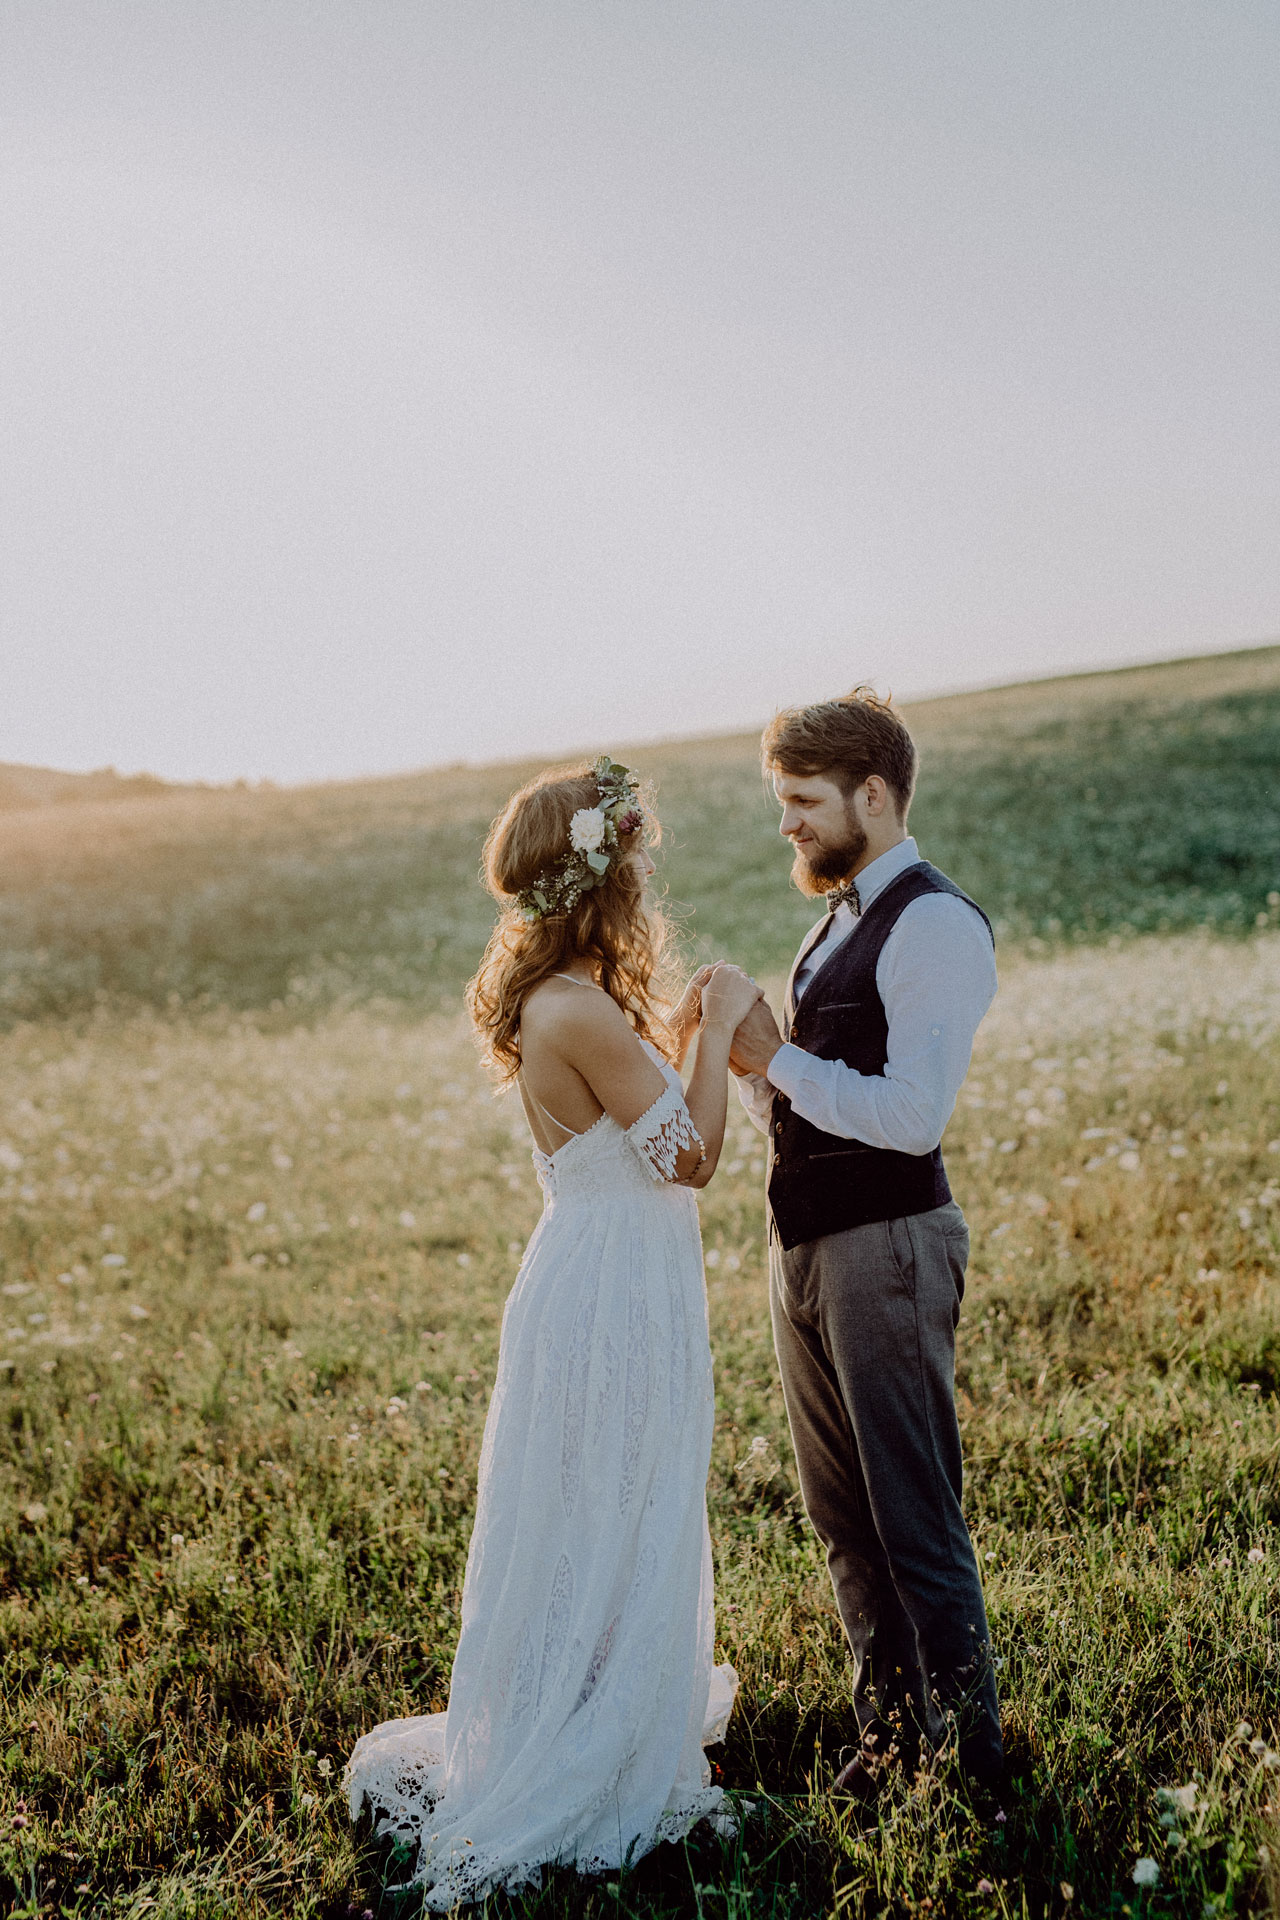 beautiful bride and groom at sunset in green natur P8VNZSM gallery - Our Bridal Store